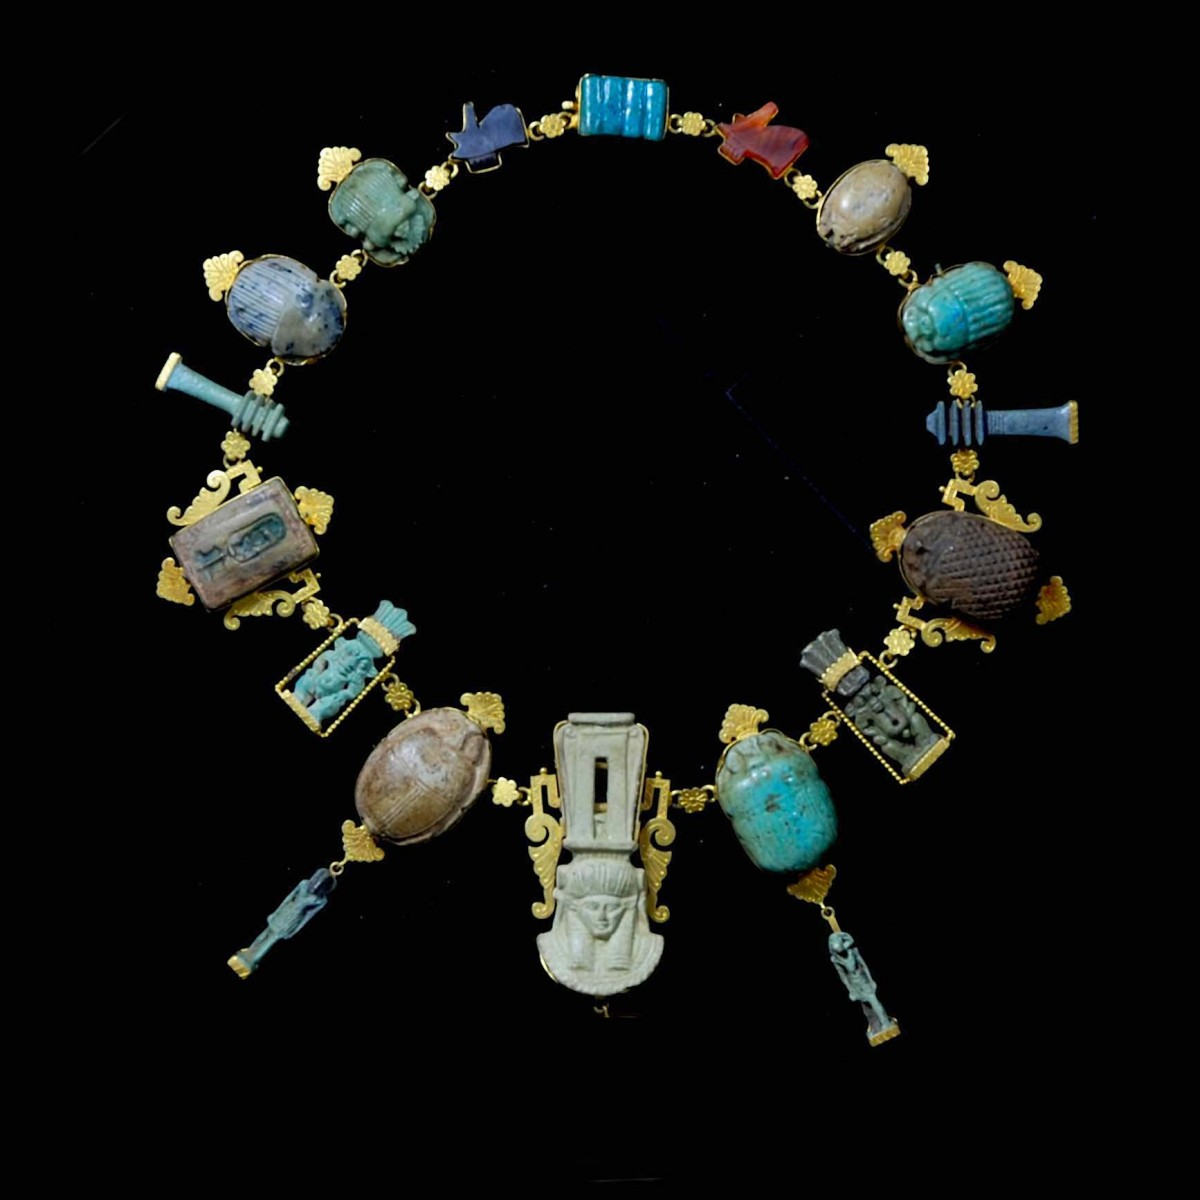 Egyptian gold jewelry with amulets necklace